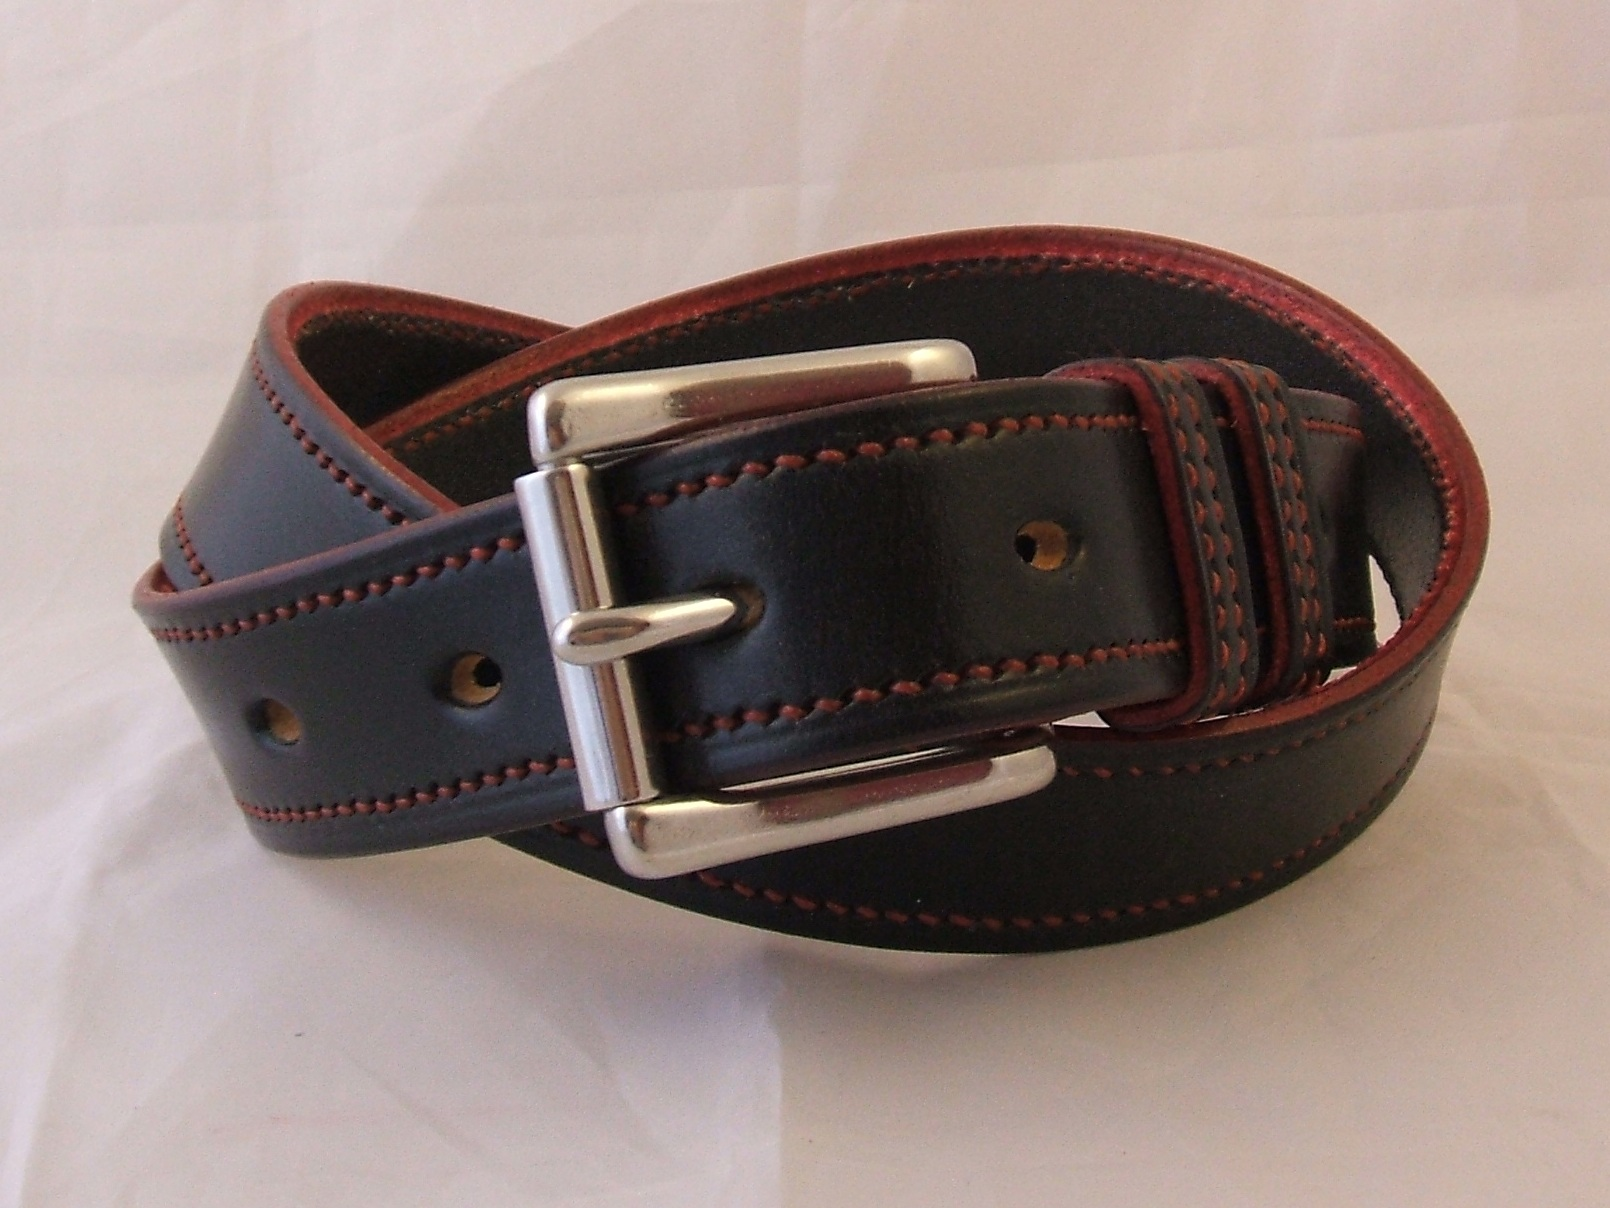 Border Belts; handstitched, a number of hours' painstaking work